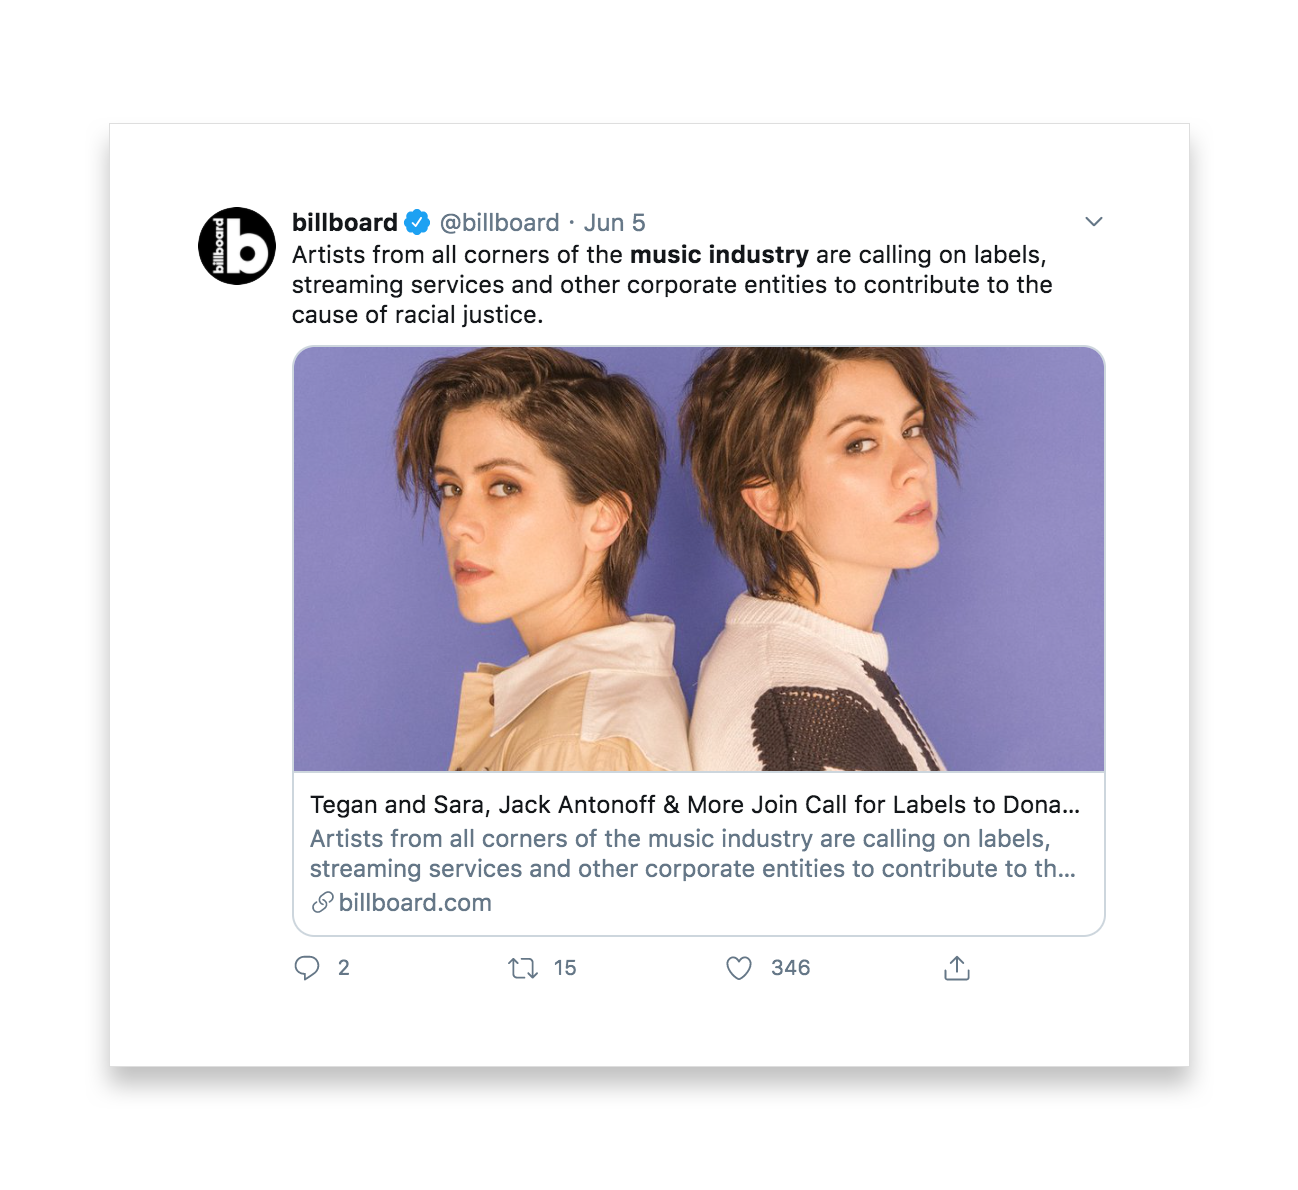 This tweet by billboard reads artists from all corners of the music industry are calling on labels, streaming services, and other corporate entities to contribute to the cause of racial justice.